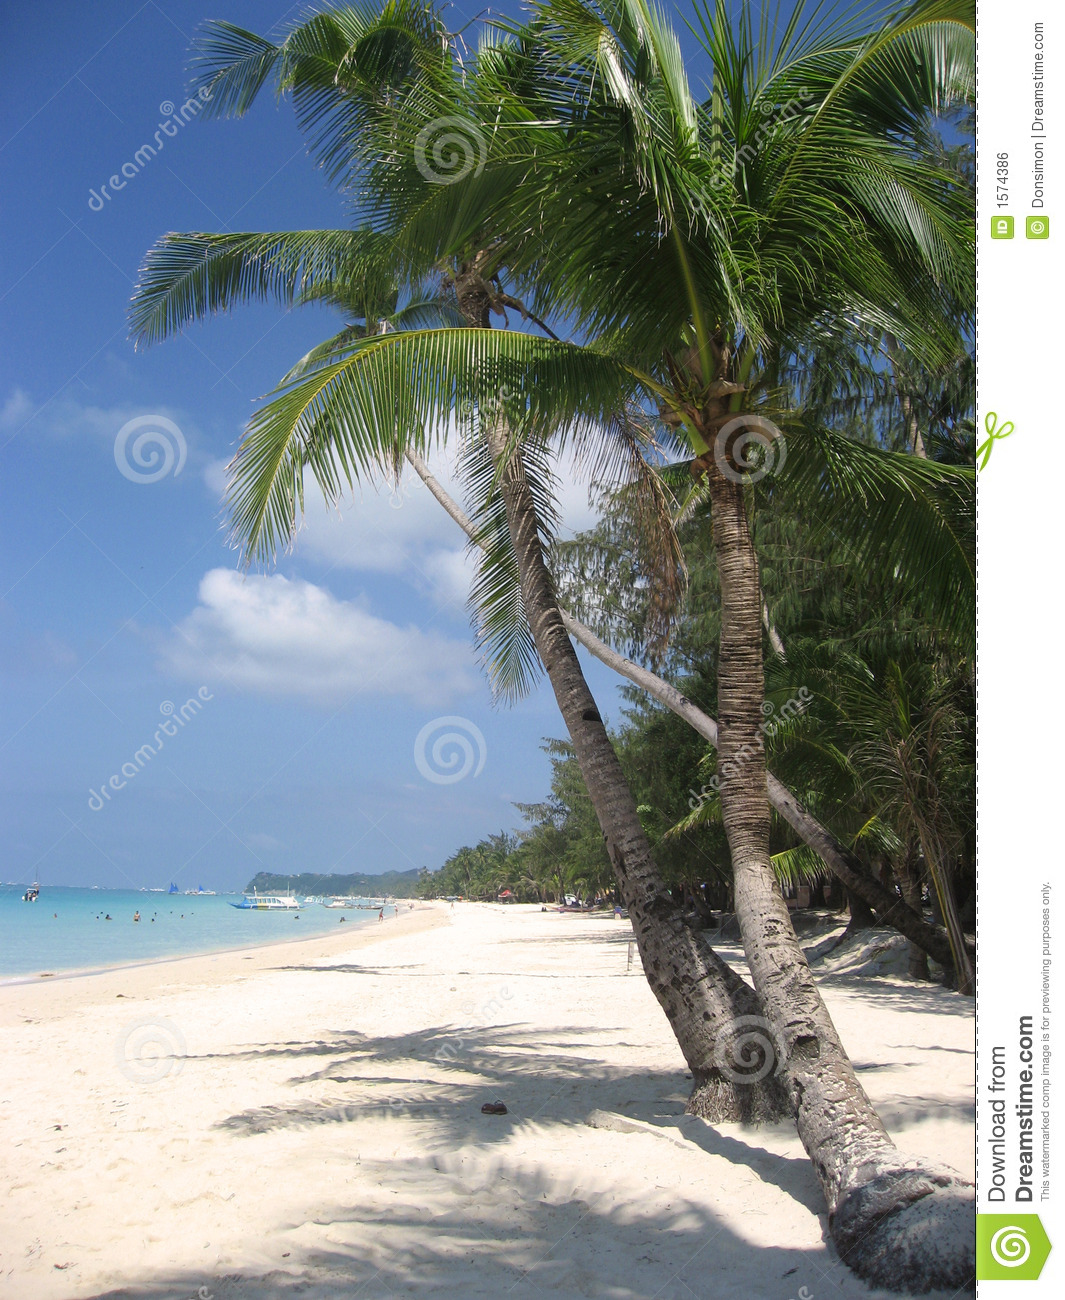 Boracay Beach: Boracay Beach Palm Trees Philippines Stock Photo